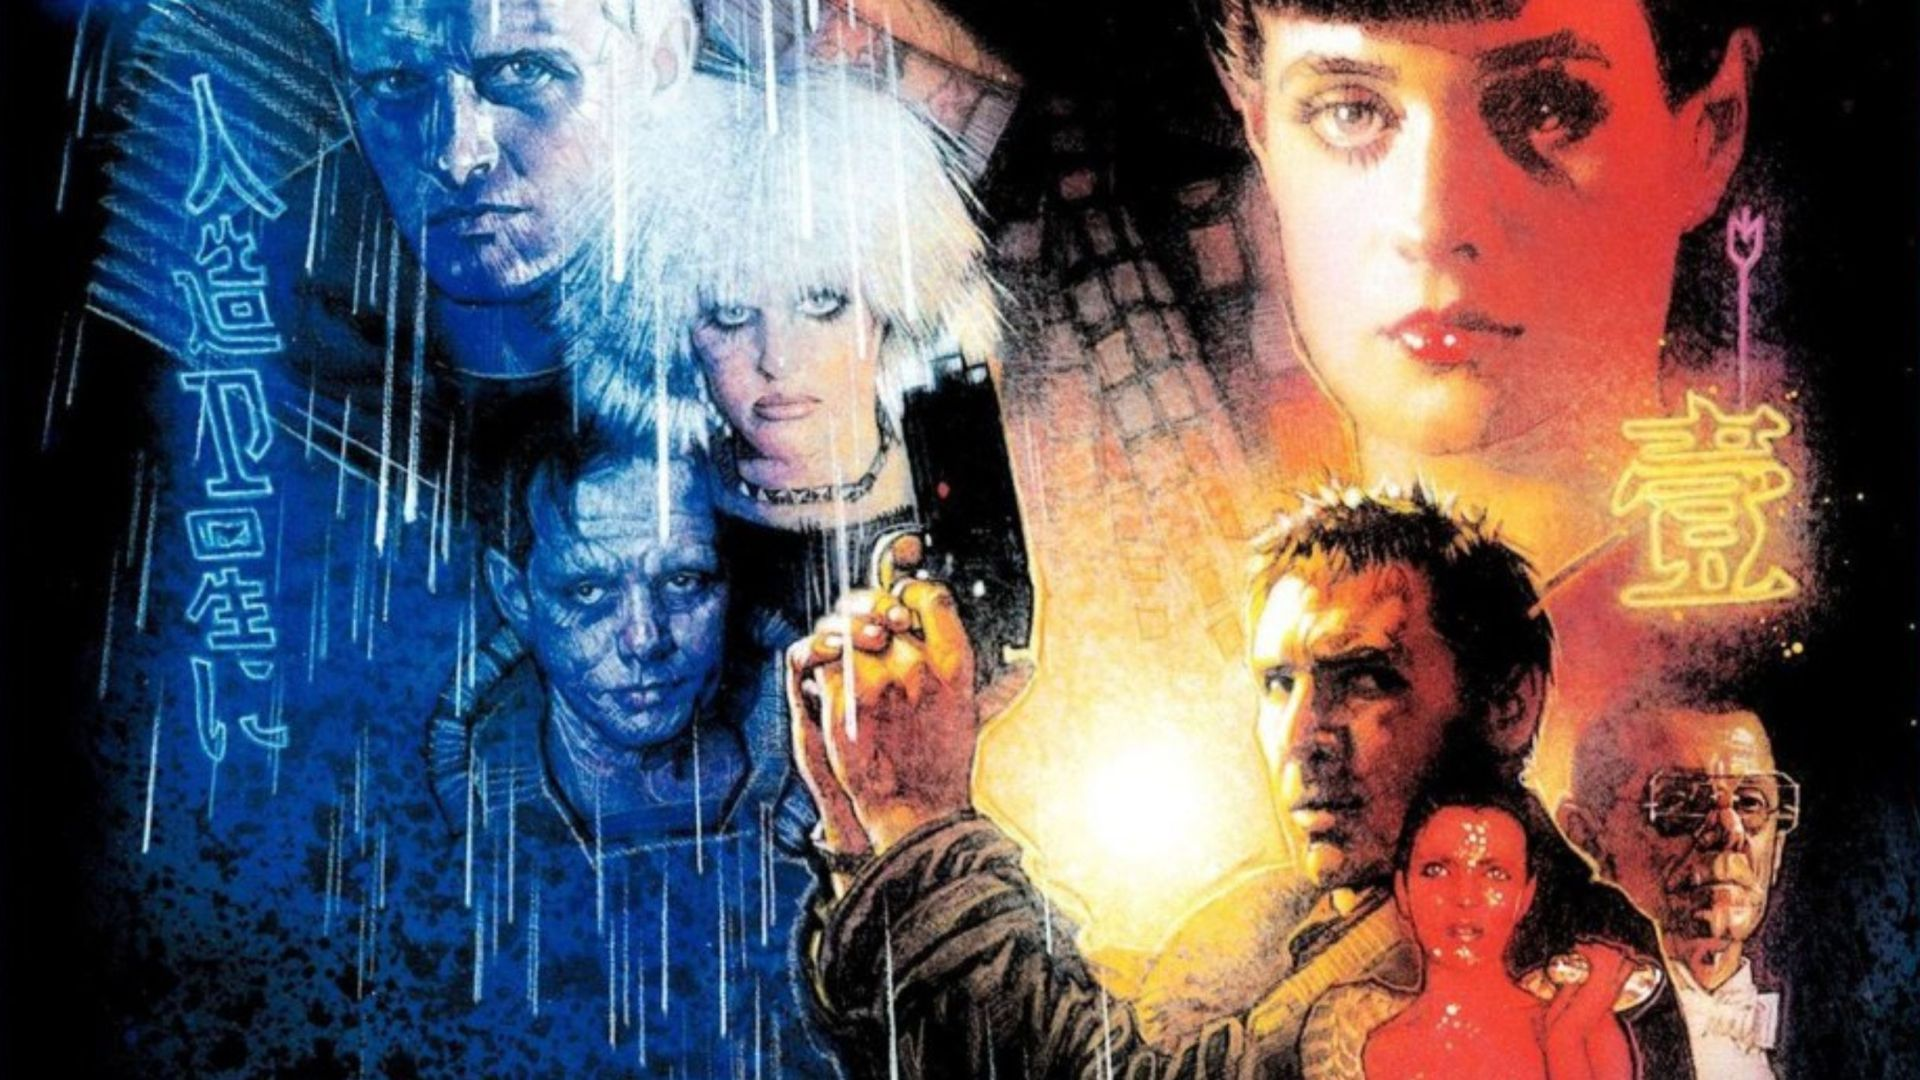 a review of the movie blade runner Read blade runner 2049 reviews from parents on common sense media become a member to write your own review.